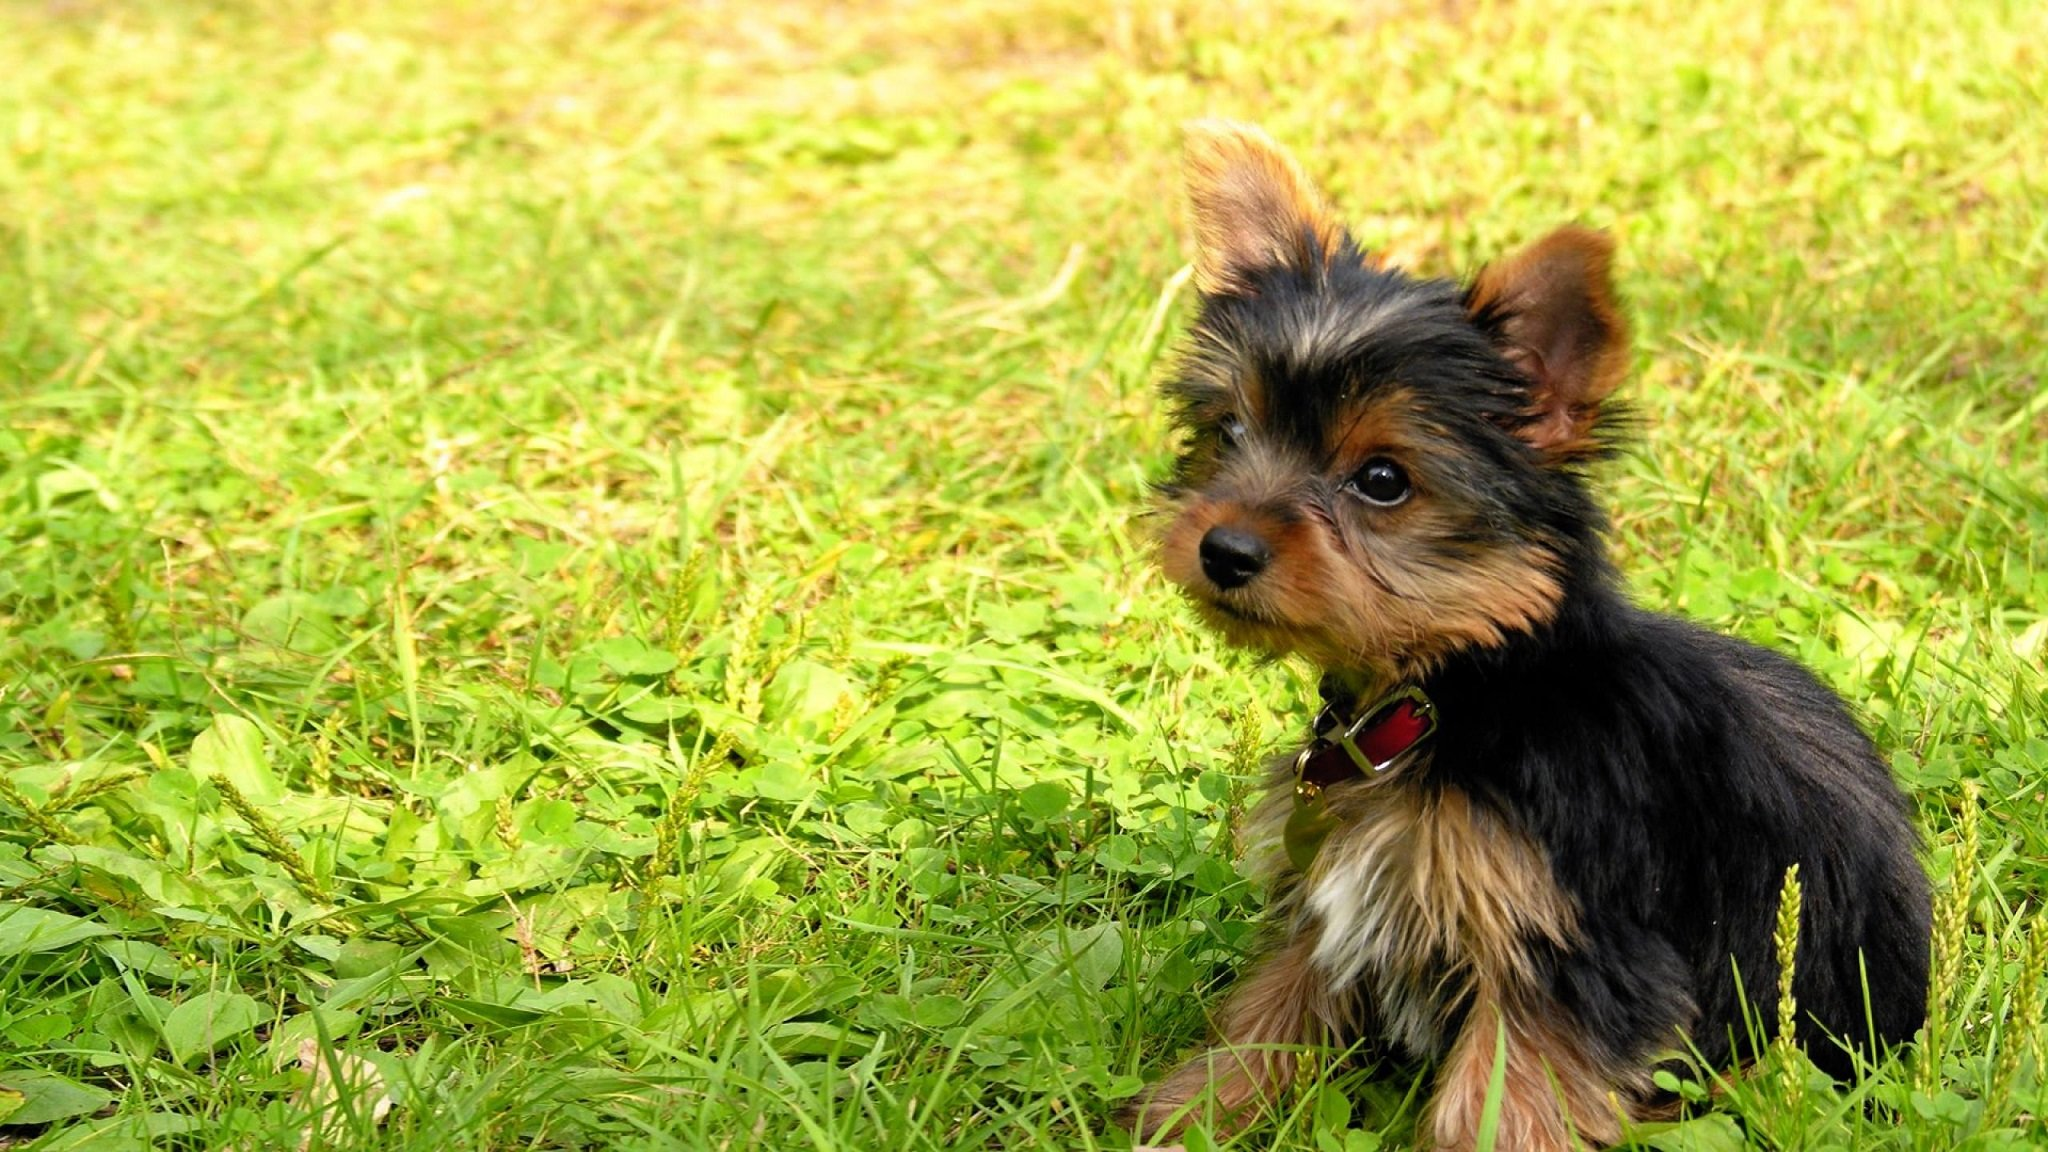 Best Yorkshire Terrier wallpaper ID:110963 for High Resolution hd 2048x1152 desktop